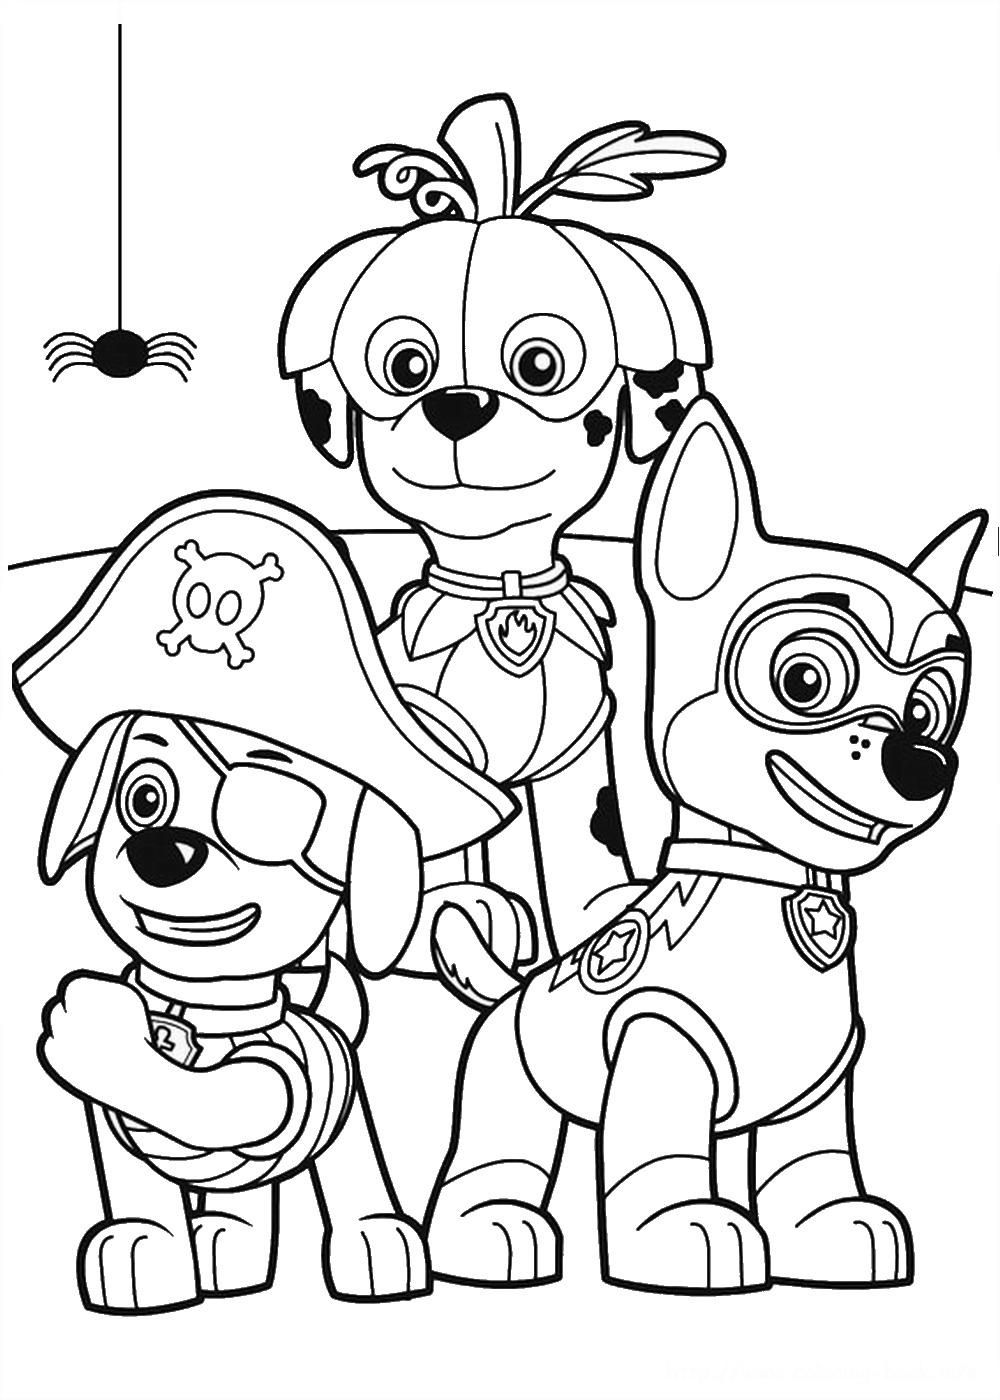 Approved Www Nickjr Coloring Pages Nickelodeon Nick Jr Download Of Nickalodeon Coloring Pages to Print